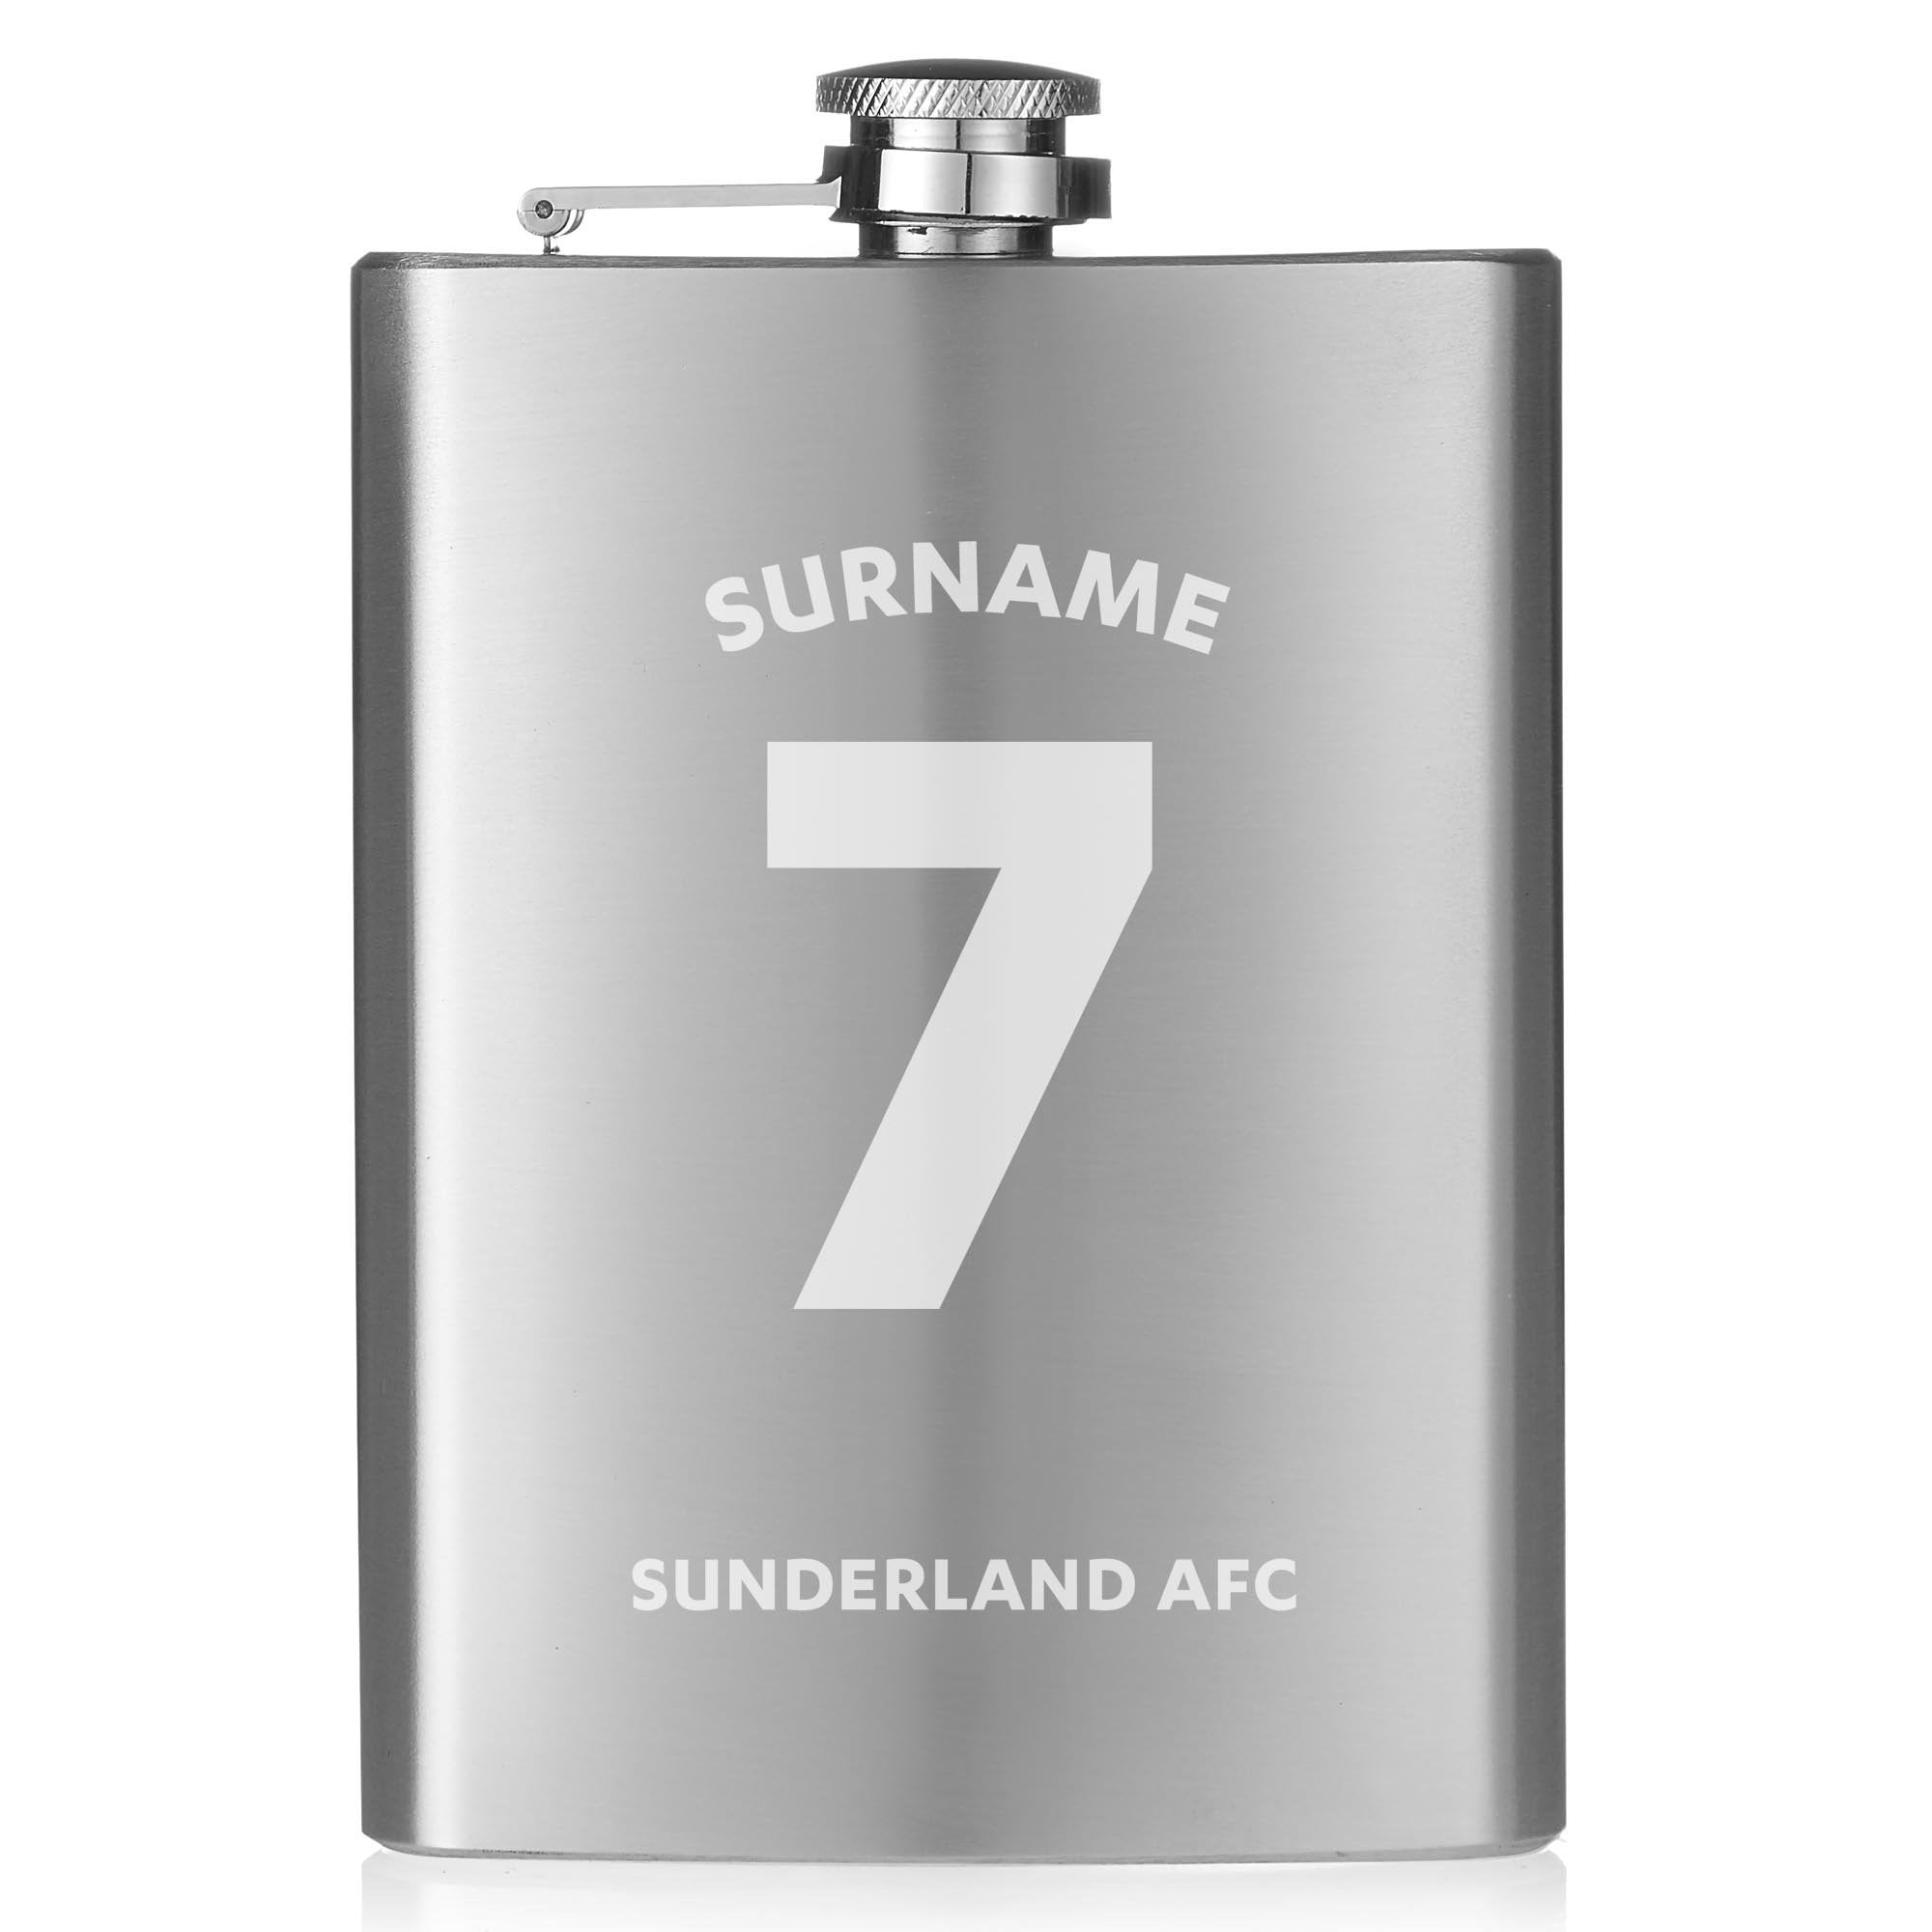 Personalised Sunderland AFC Shirt Hip Flask, Food & Beverage Carriers by Glamorous Gifts UK